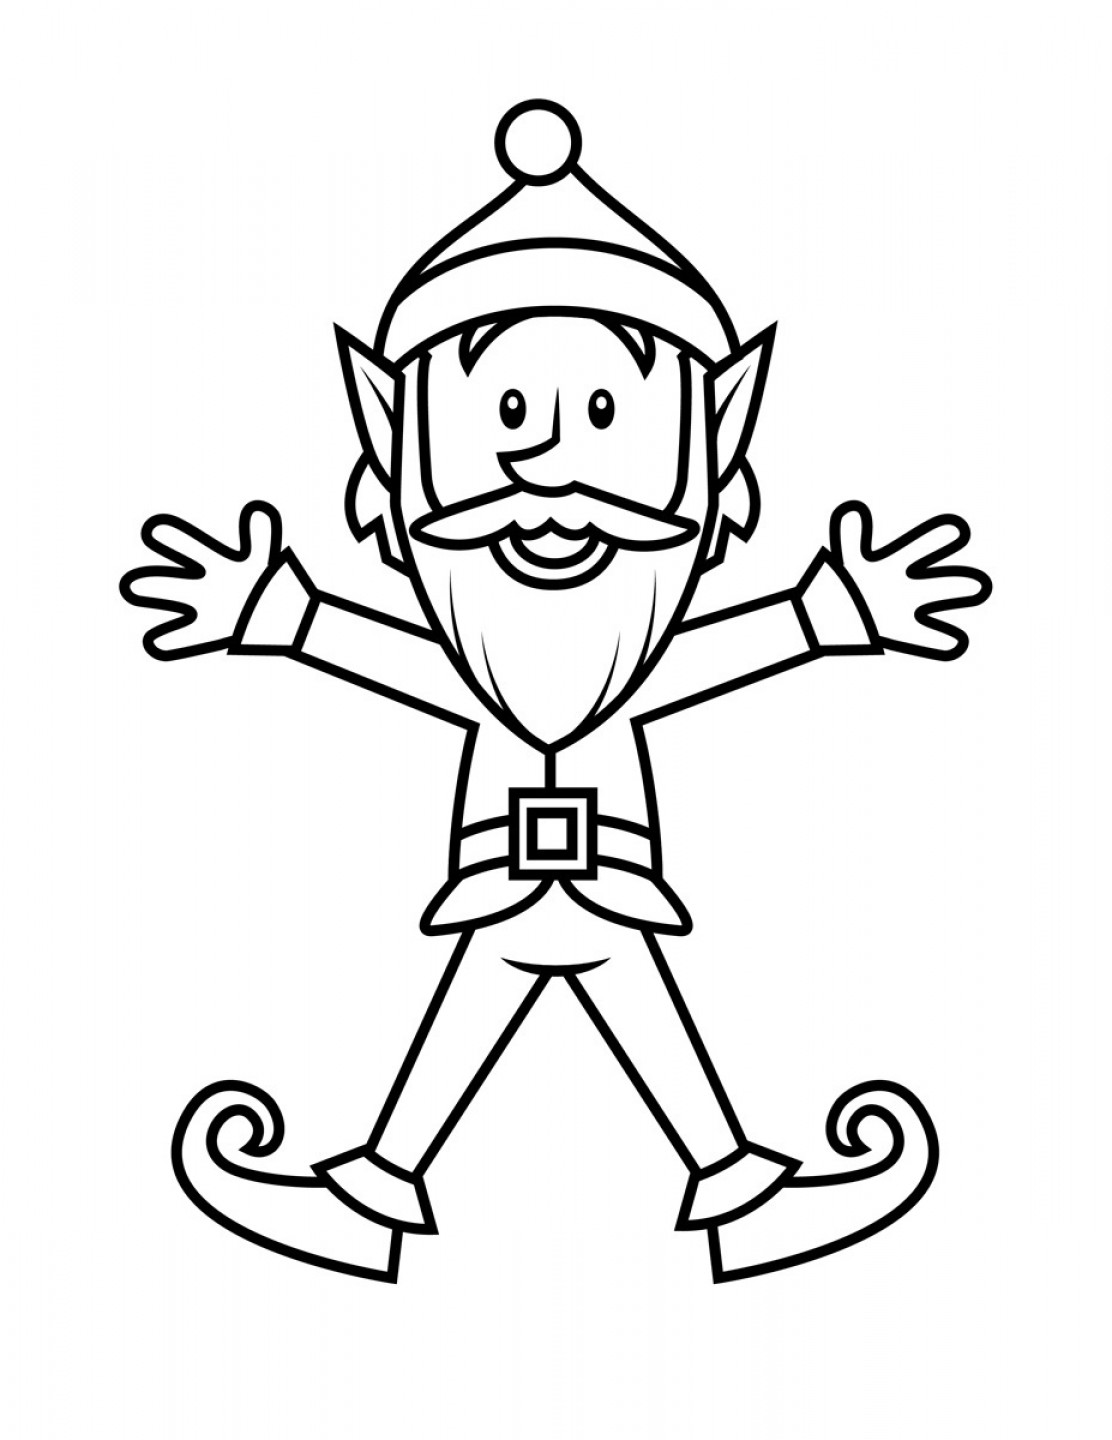 1112x1440 Free Printable Elf Coloring Pages Intricate On The Shelf For Kids